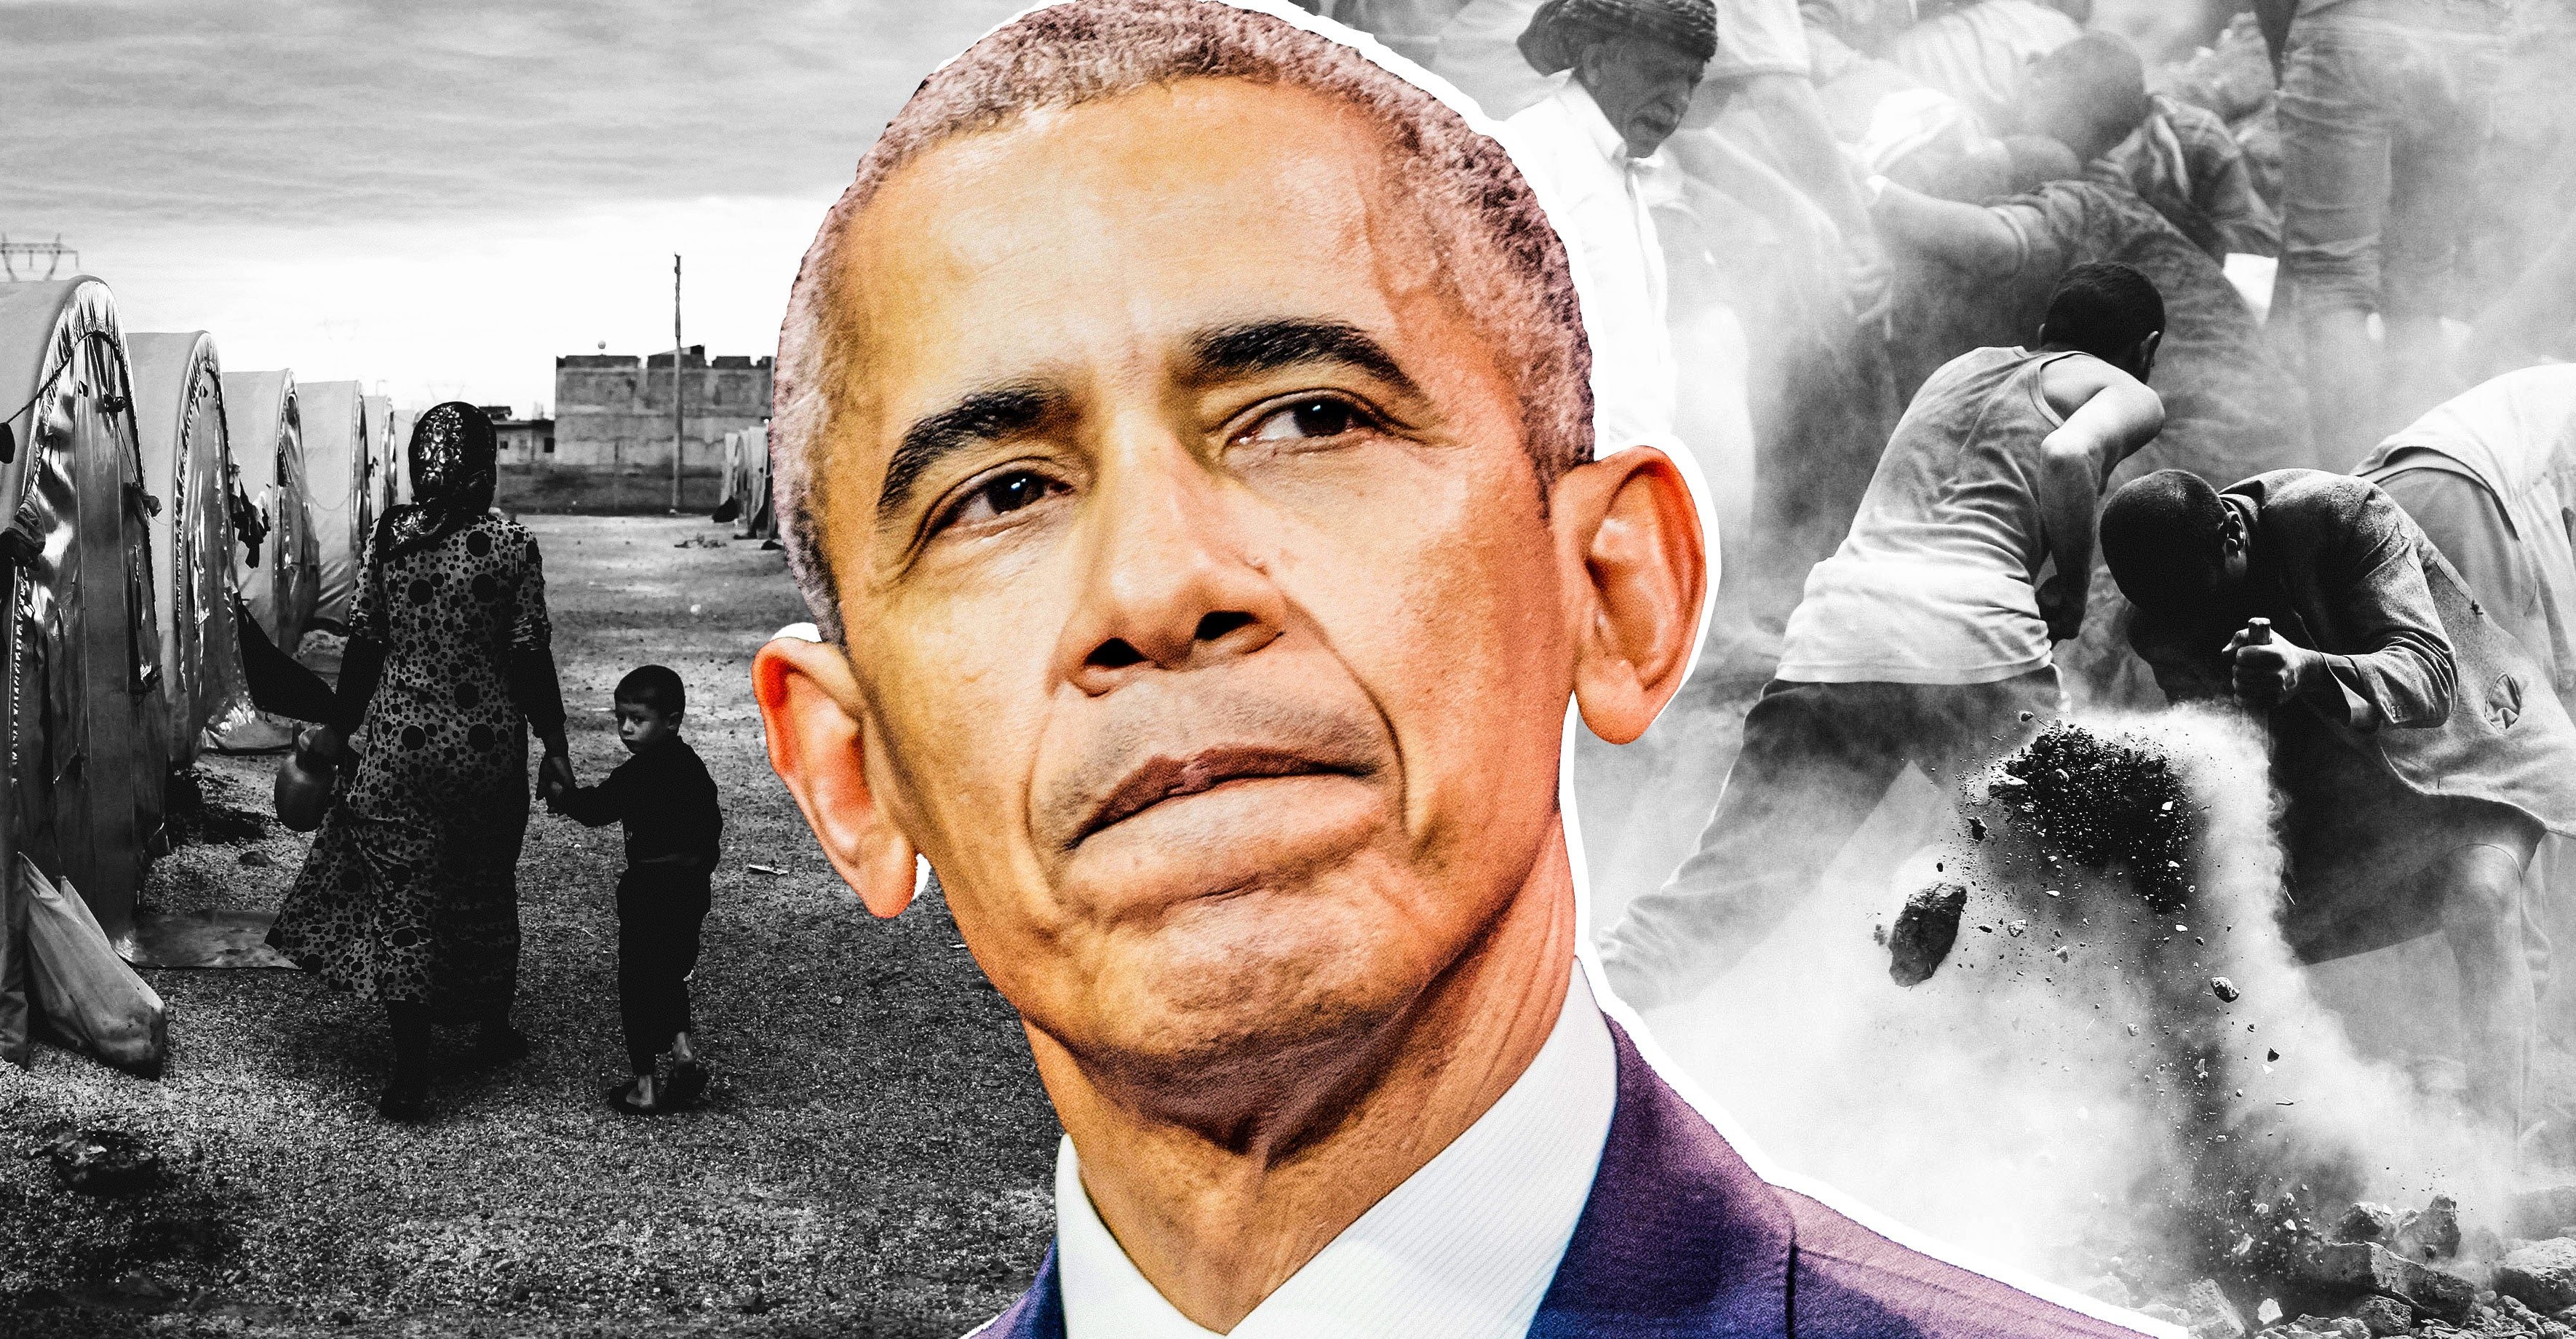 Photo illustration: The face of former President Barack Obama is superimposed on images of a conflict in the Middle East. Photo illustration by Slate. Photos by Gokhan Sahin/Getty Images, Stephane Cardinale - Corbis/Corbis via Getty Images, and Mohammed Huwais/AFP/Getty Images.